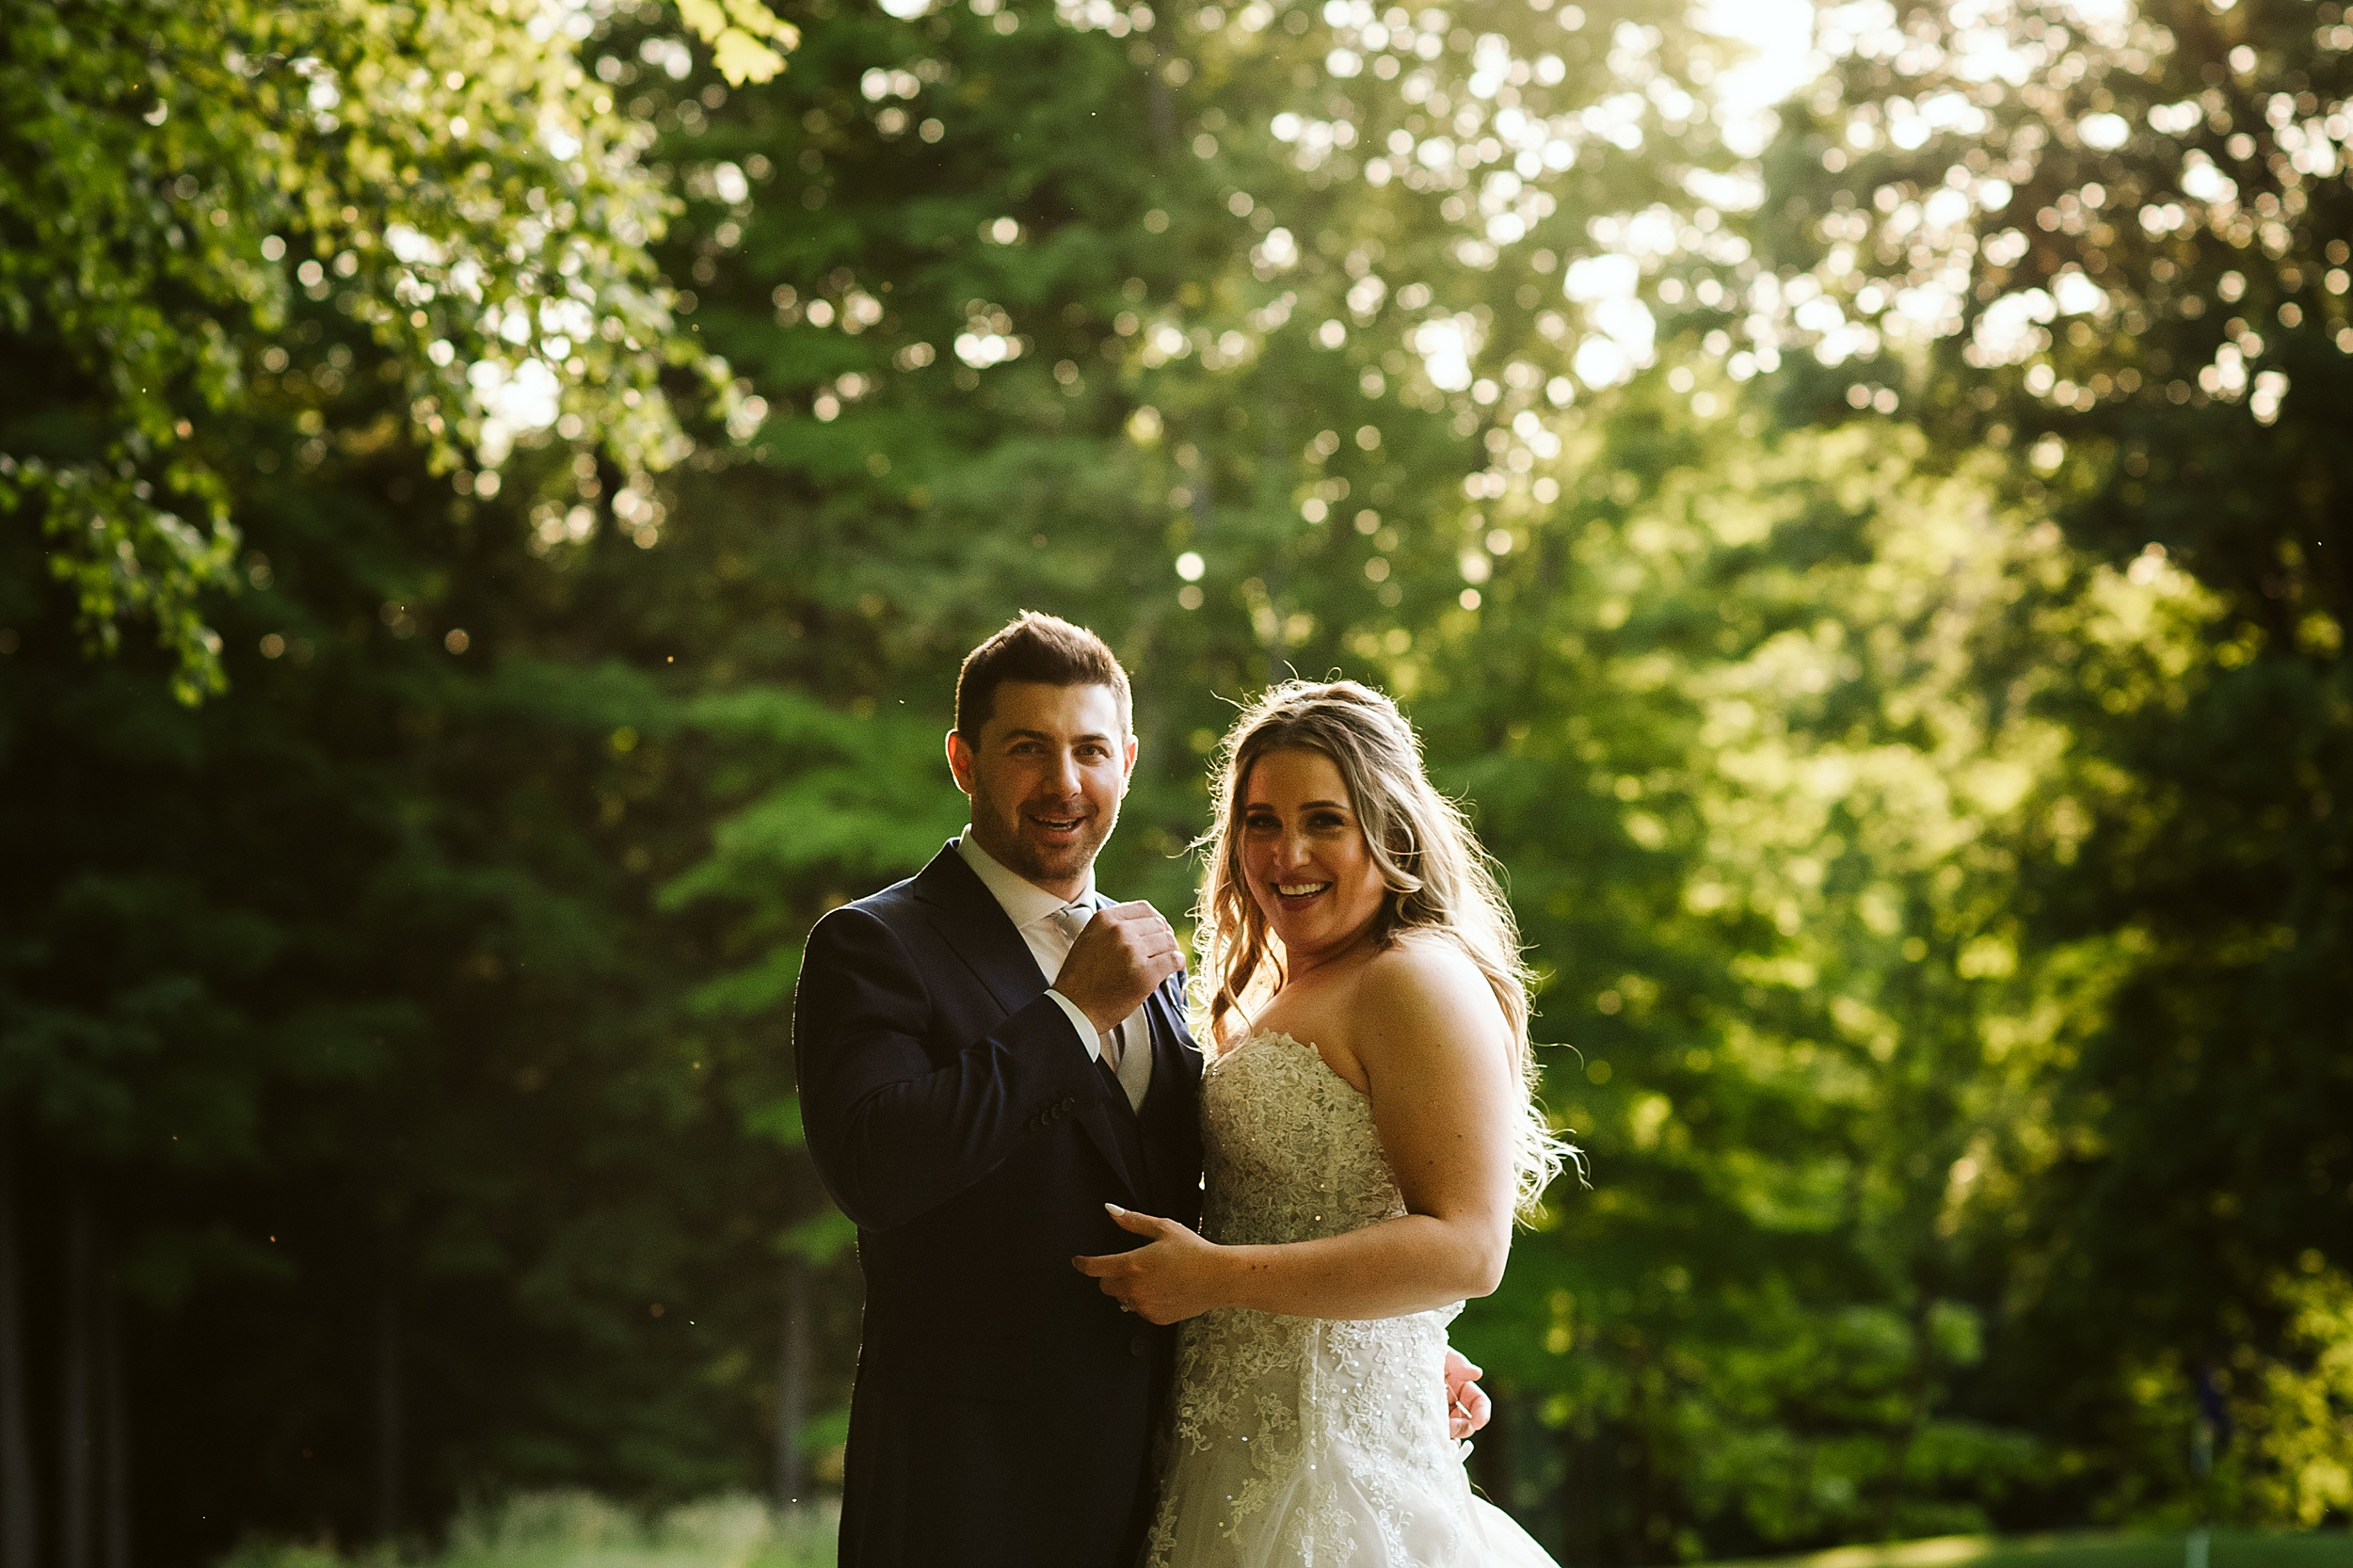 Toronto-Wedding-Photographers-Pheasant-run-golf-club-newmarket_0027.jpg